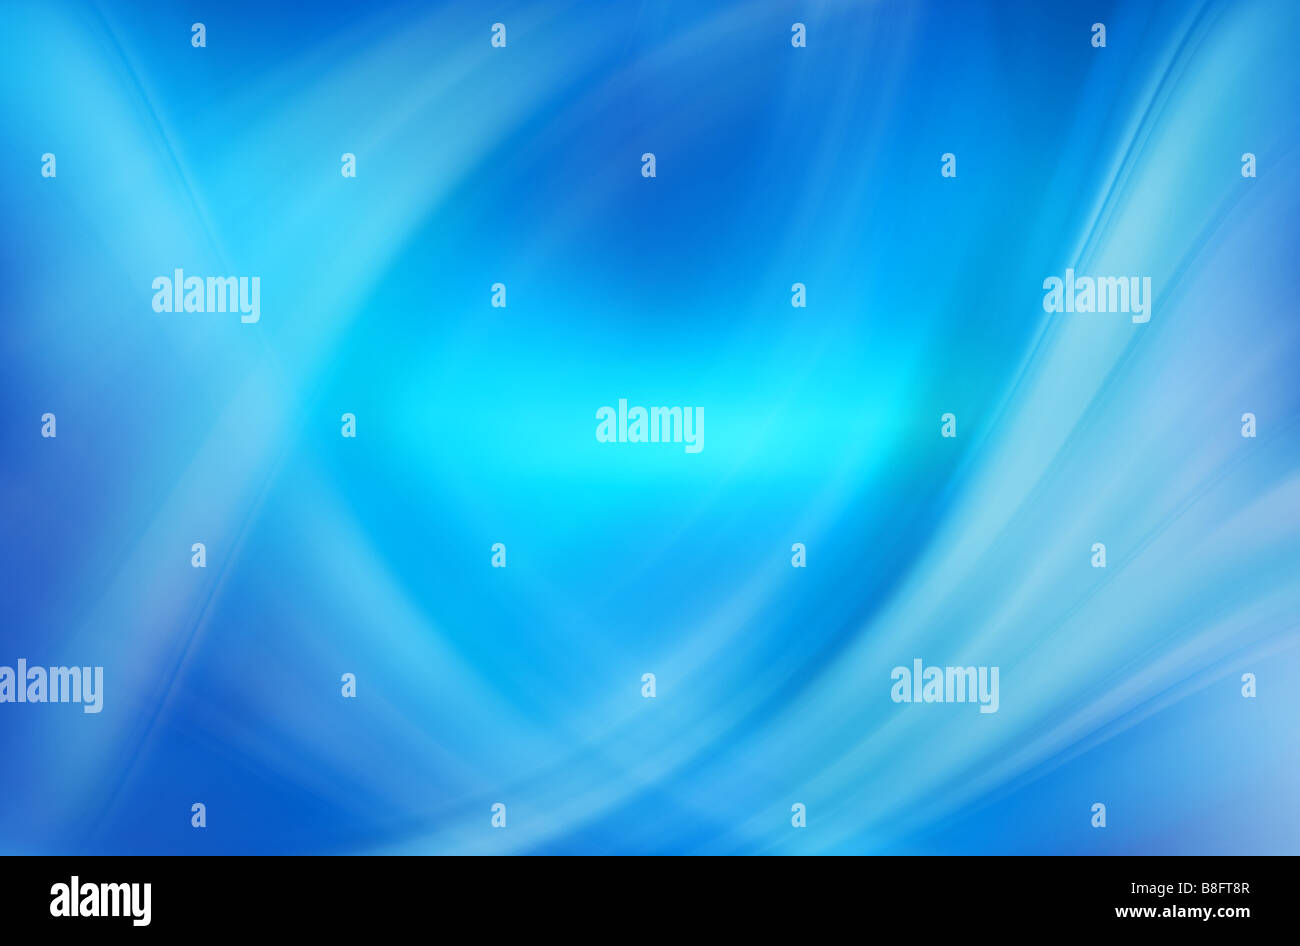 great abstract blue waves and lines image - Stock Image